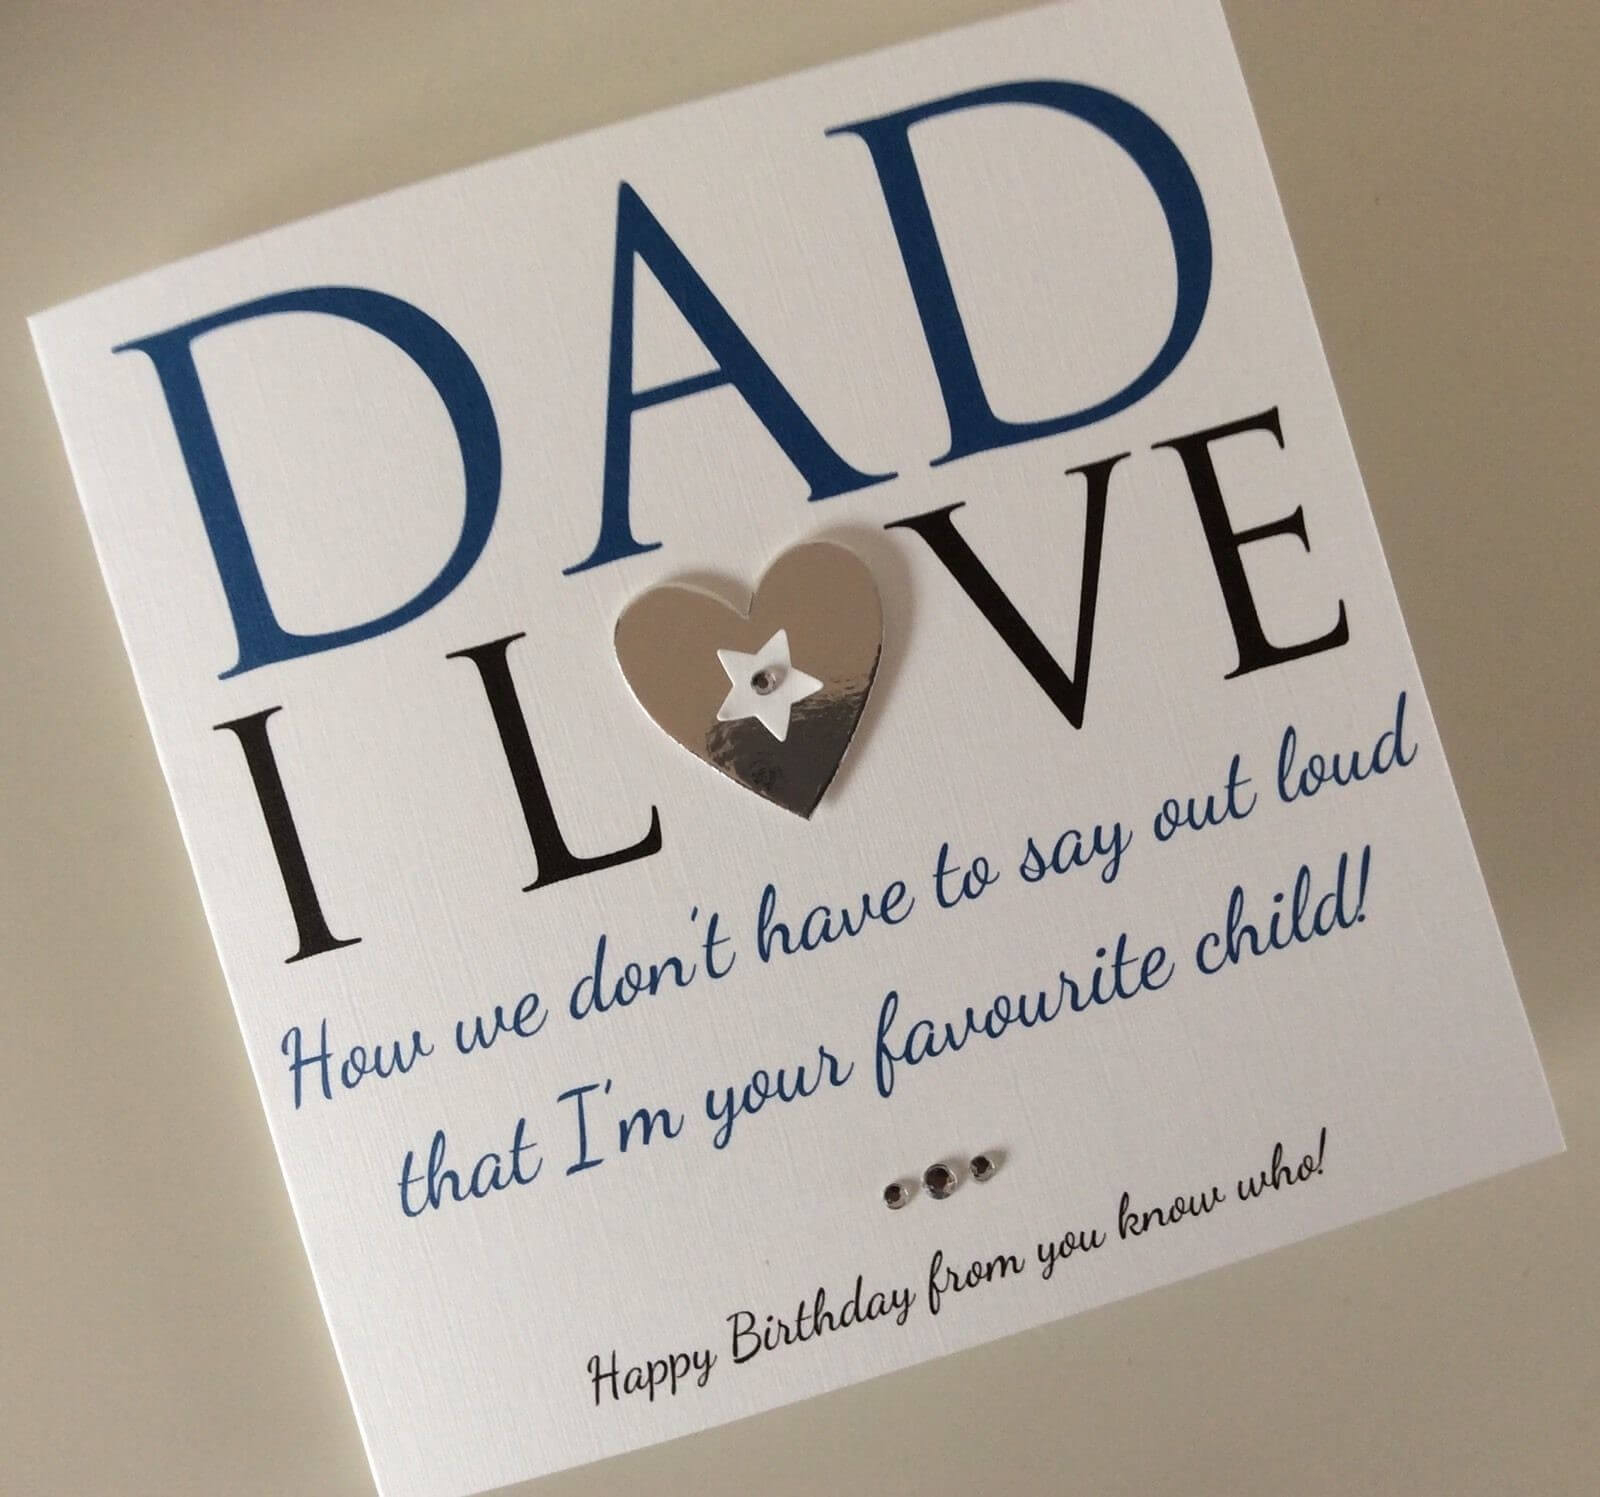 Birthday Cards Ideas For Dad Birthday Card Ideas For Dad Examples And Forms